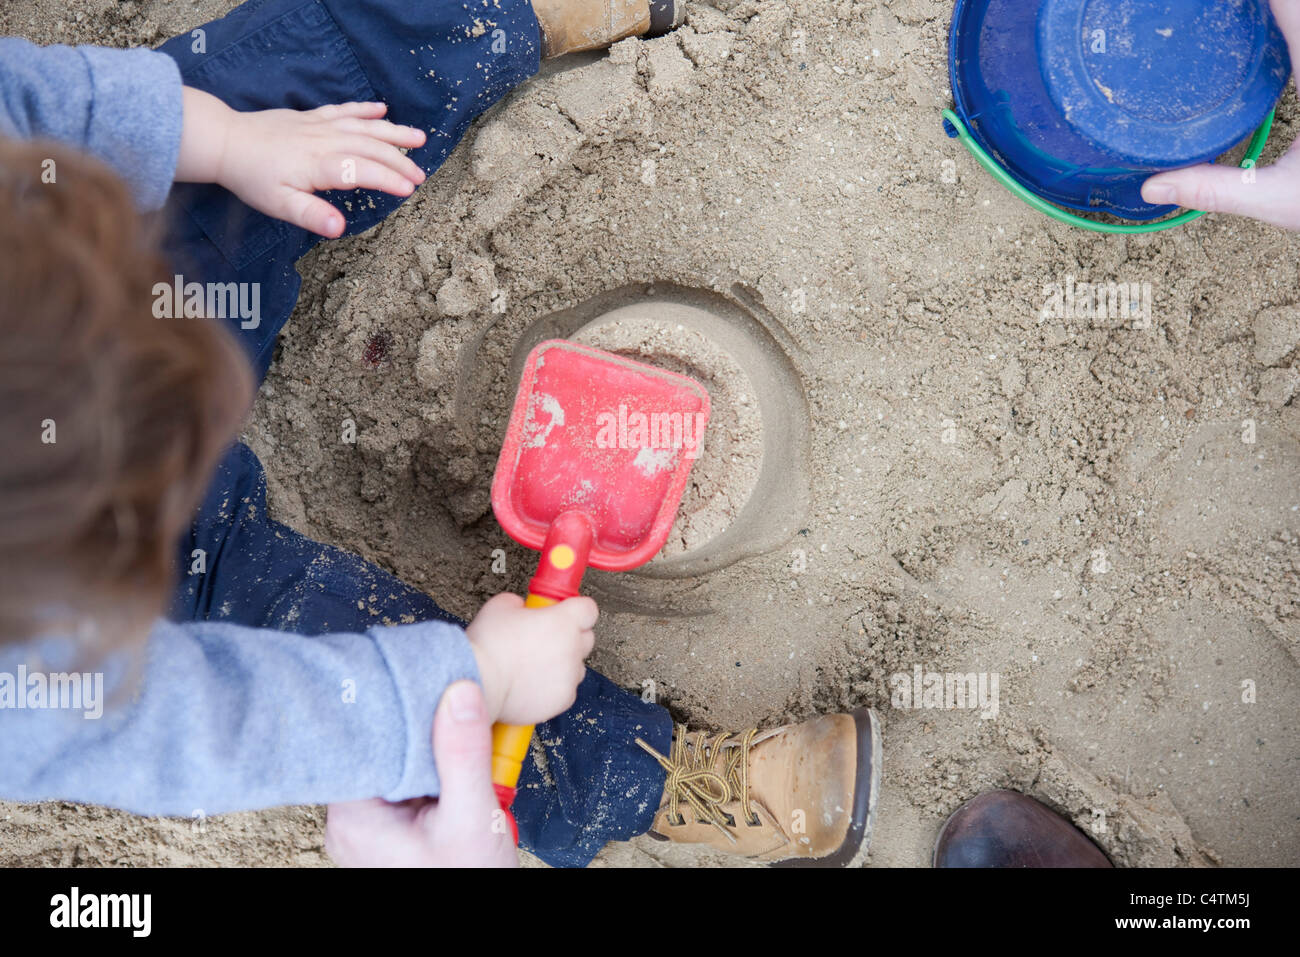 Toddler boy playing in sand - Stock Image